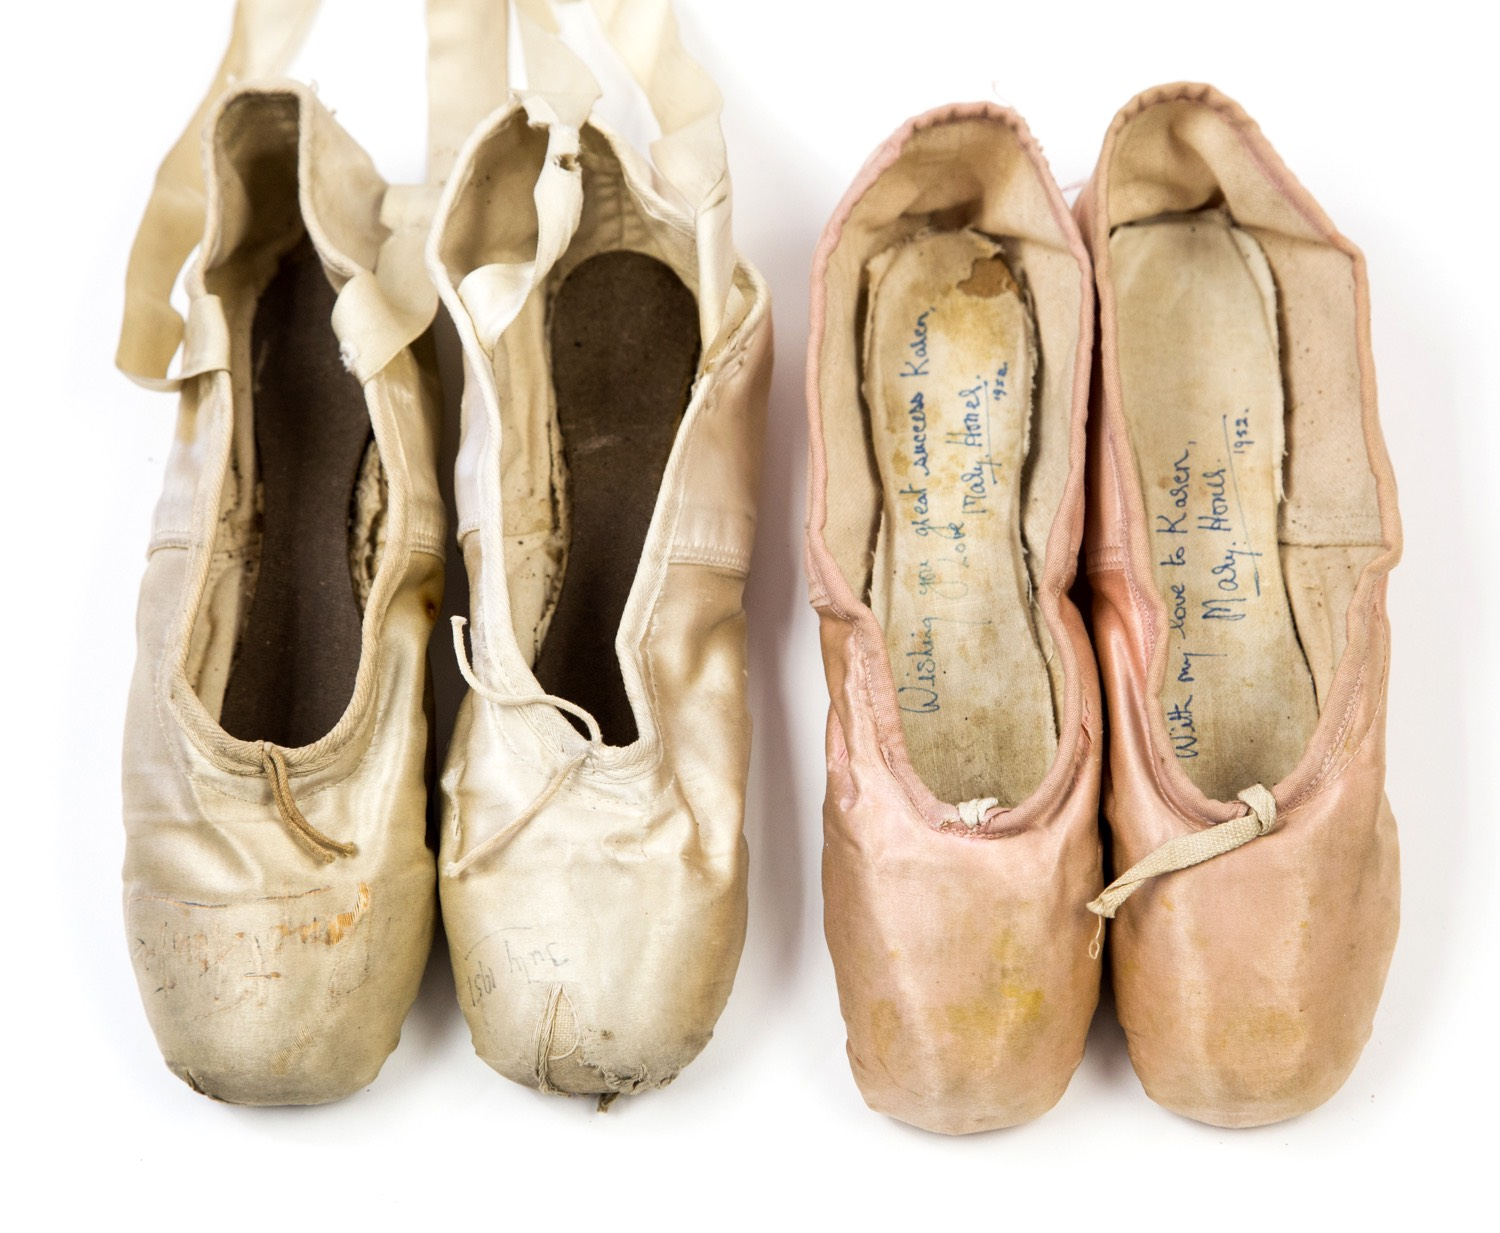 Ballet Shoes. Margot Fonteyn's pointe shoes (on the left) are among those up for auction.